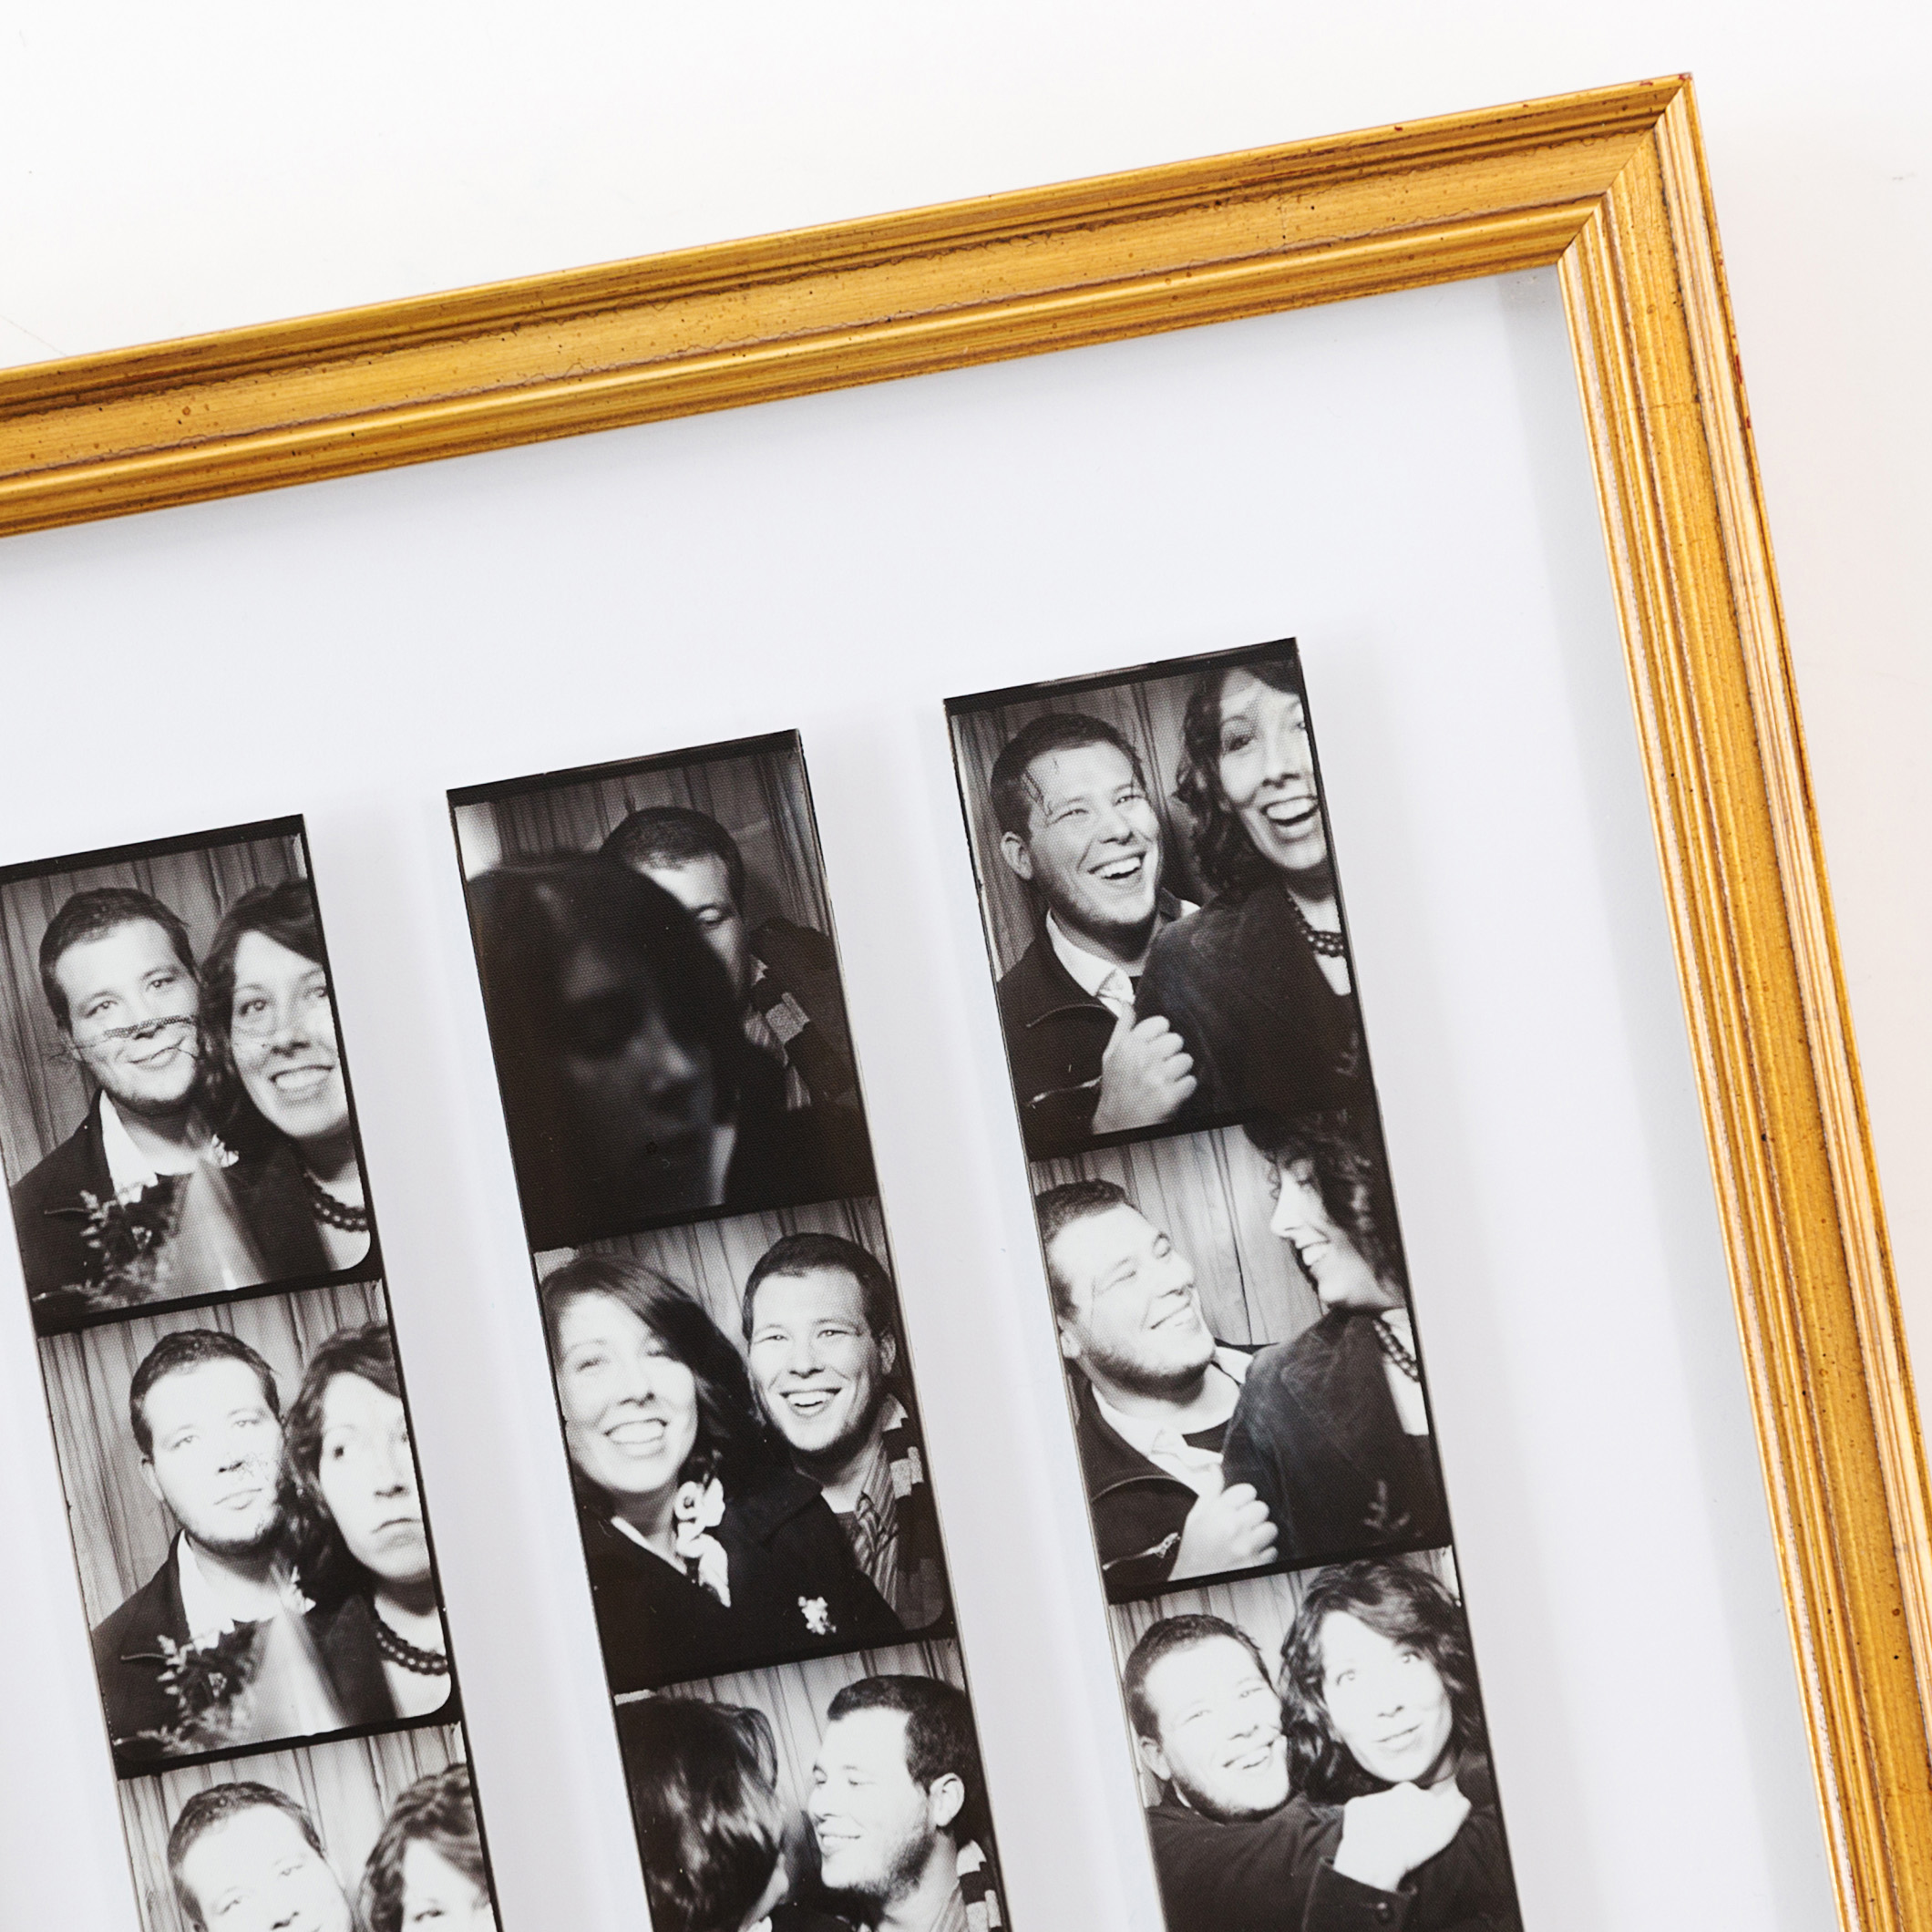 Black & White photo strips framed in thin gold richmond frame